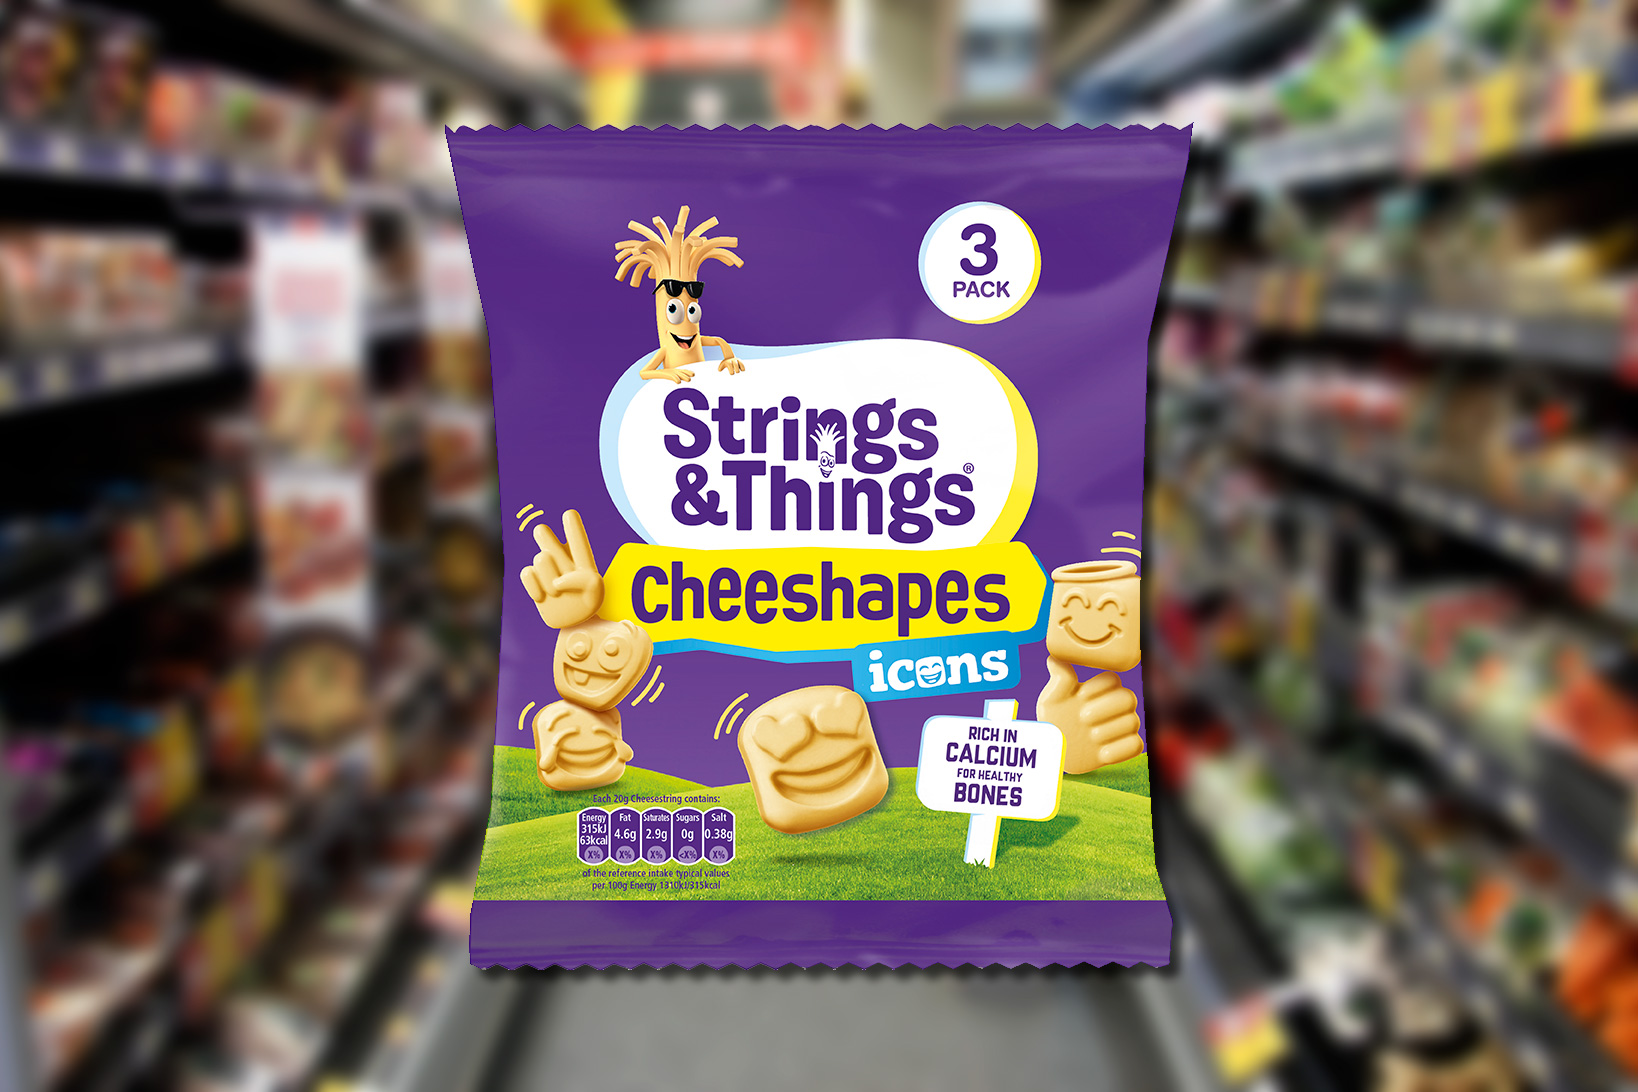 Cheeshapes from Kerry Foods